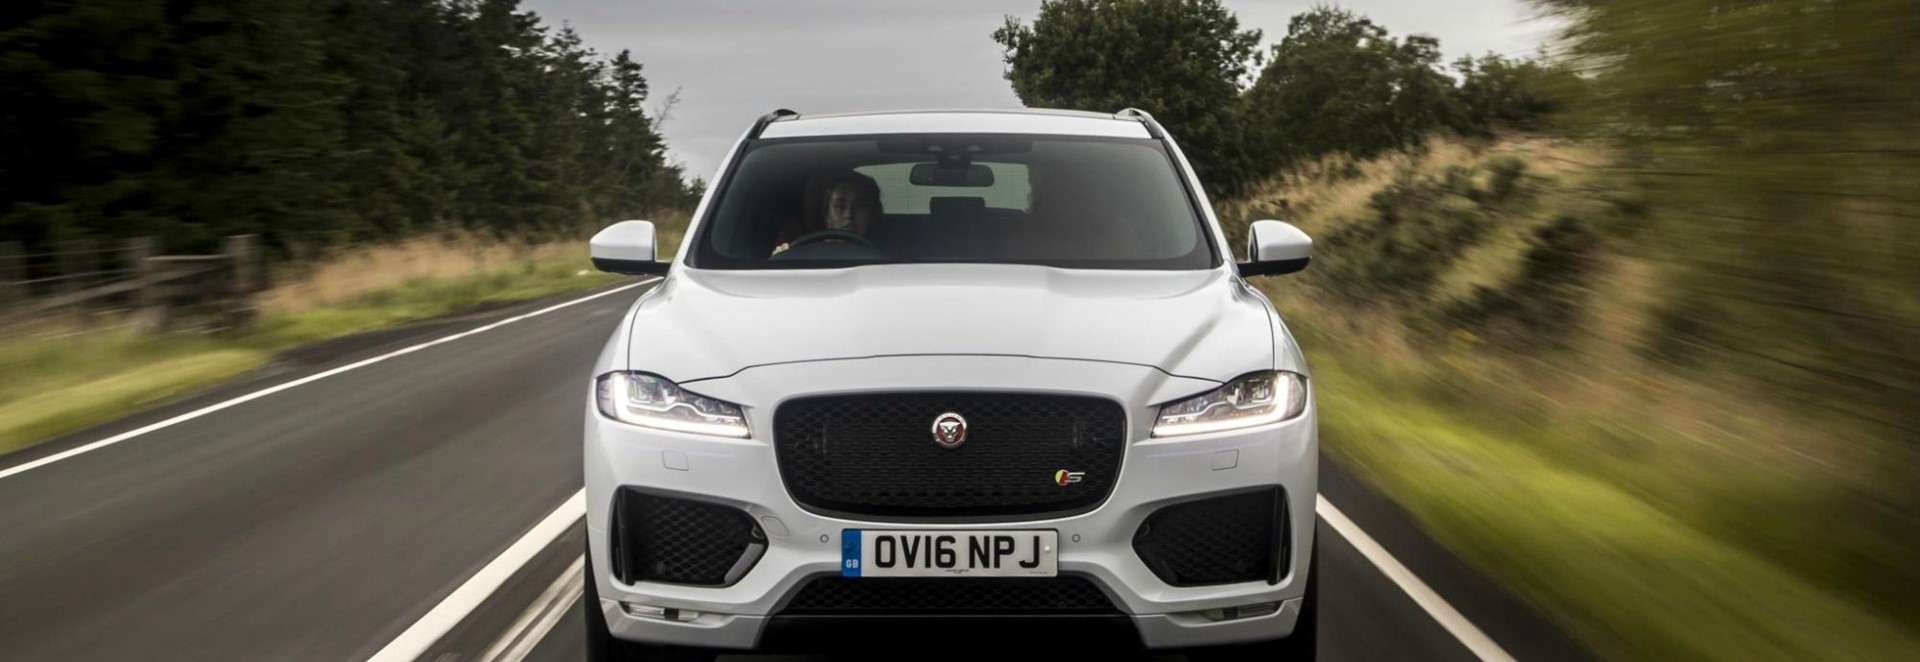 Jaguar F-PACE SVR with 567bhp reportedly coming later in 2017